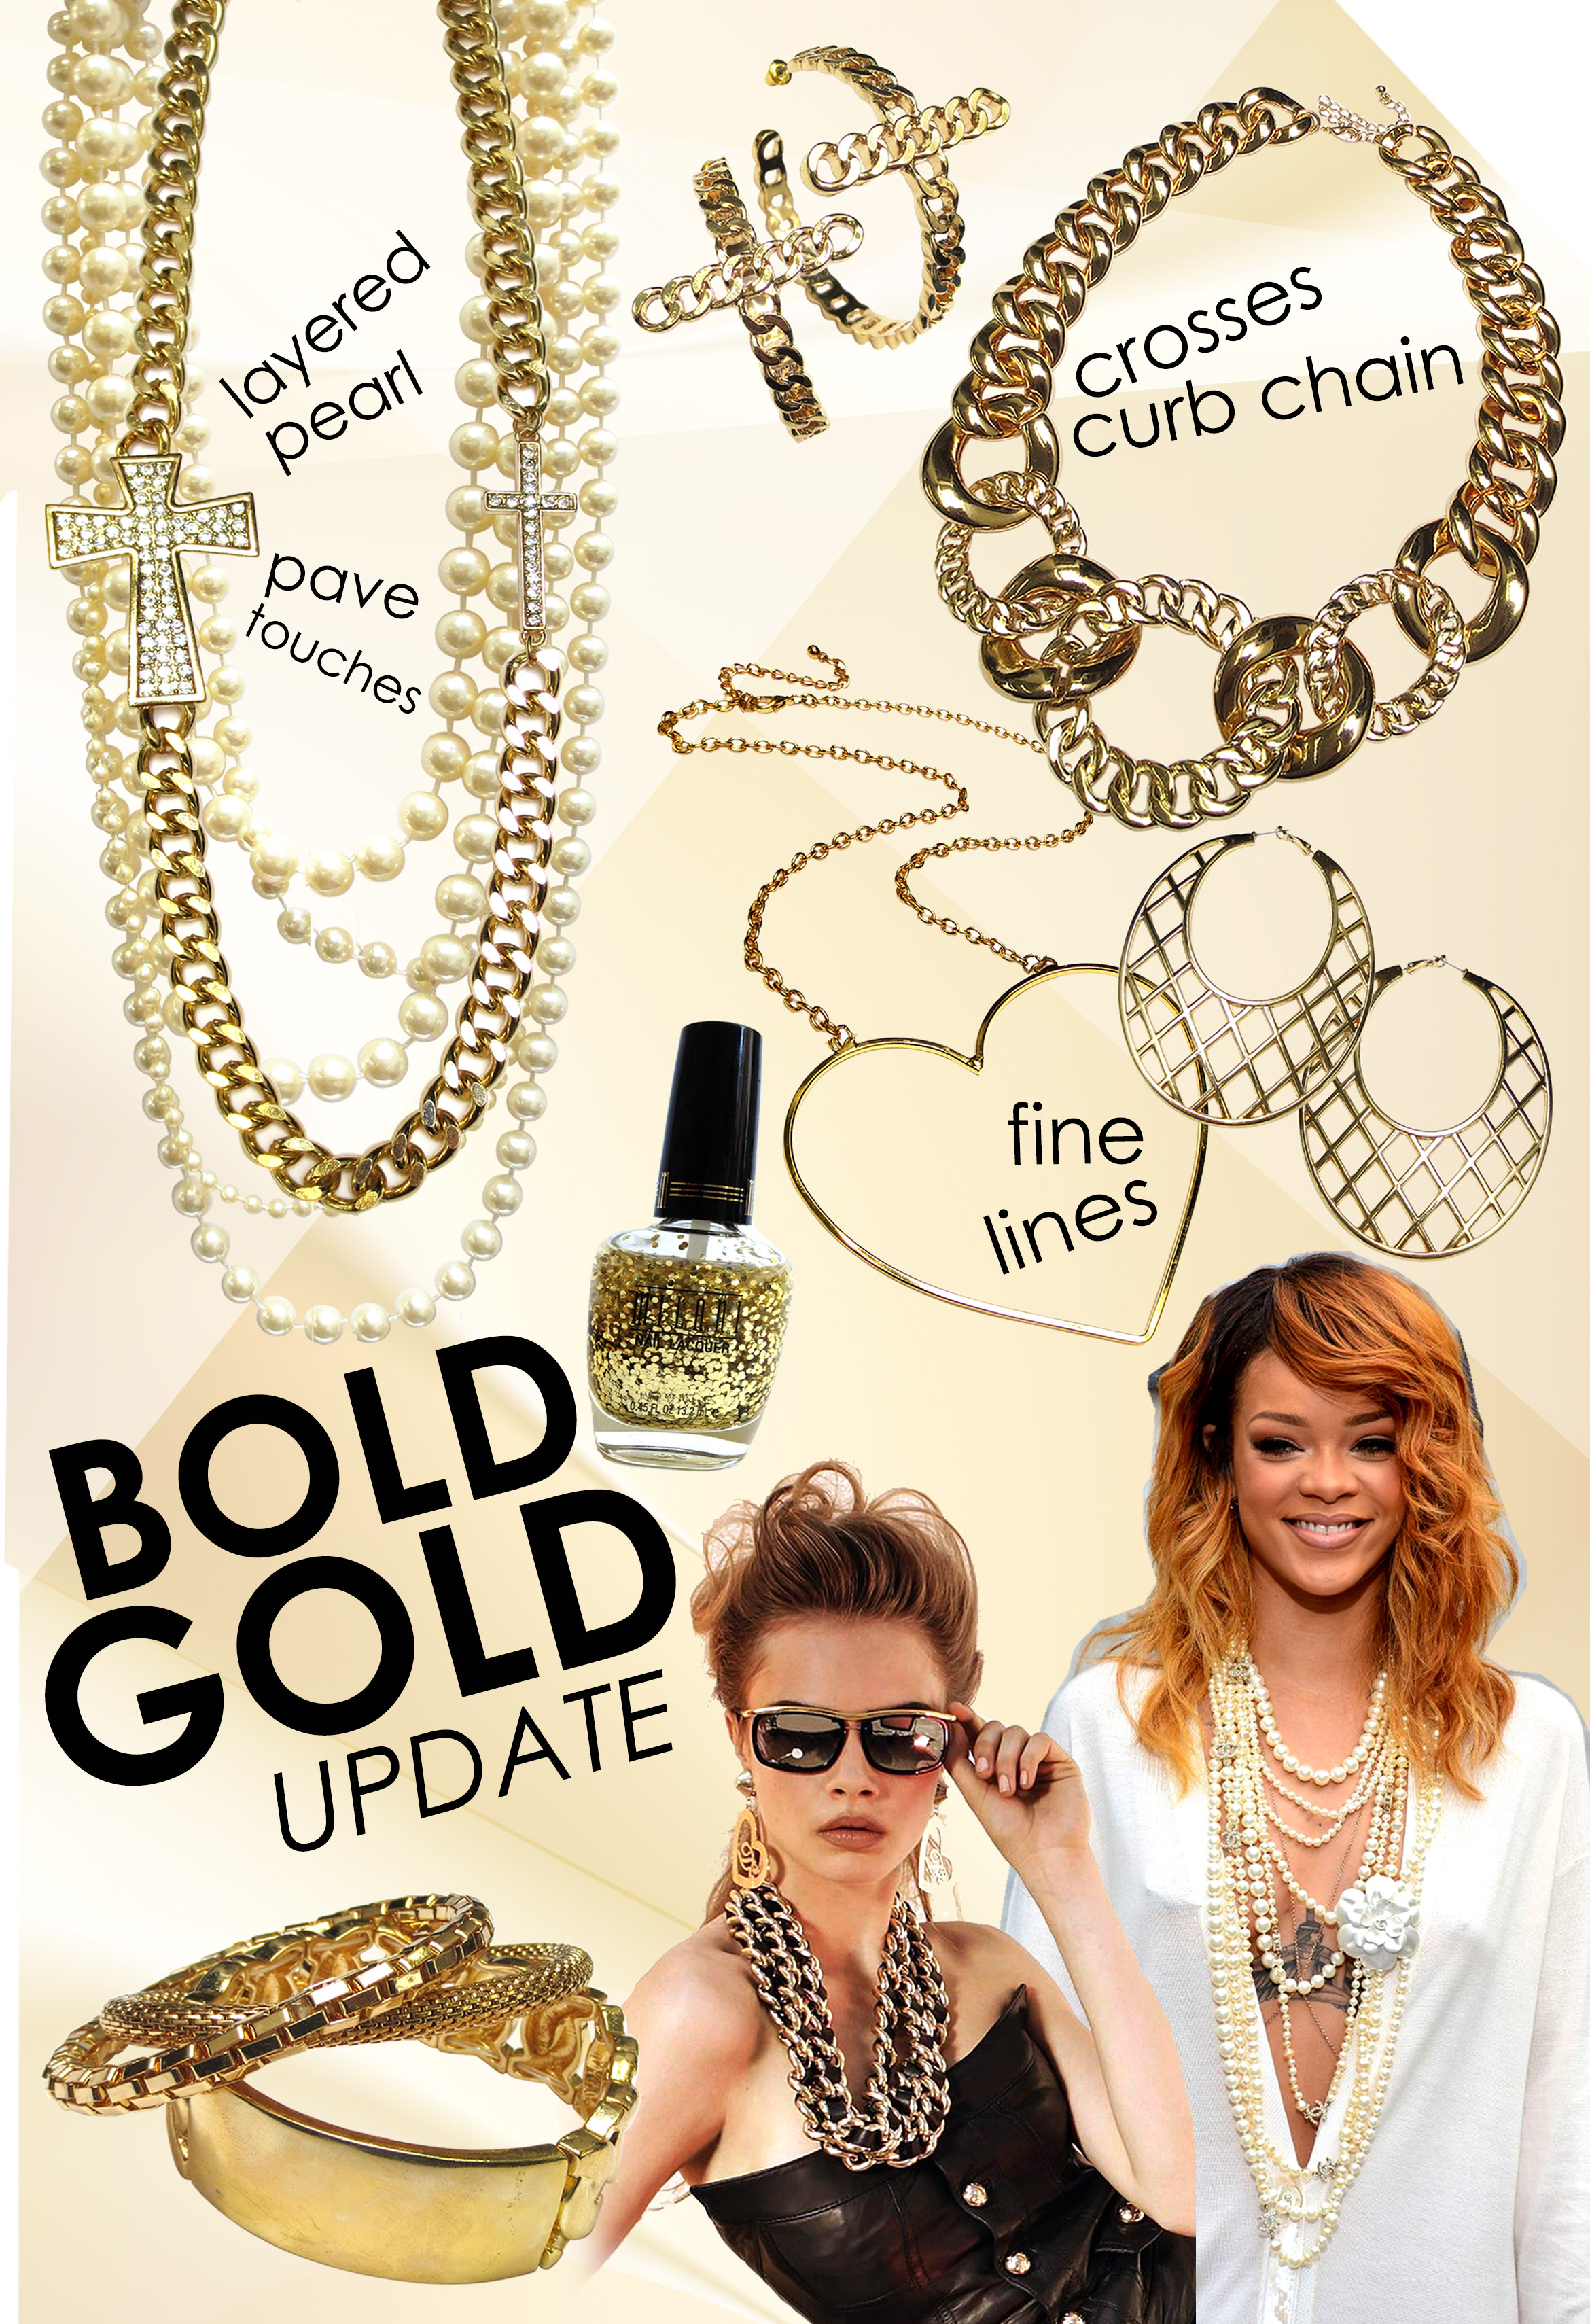 Bold Gold Update